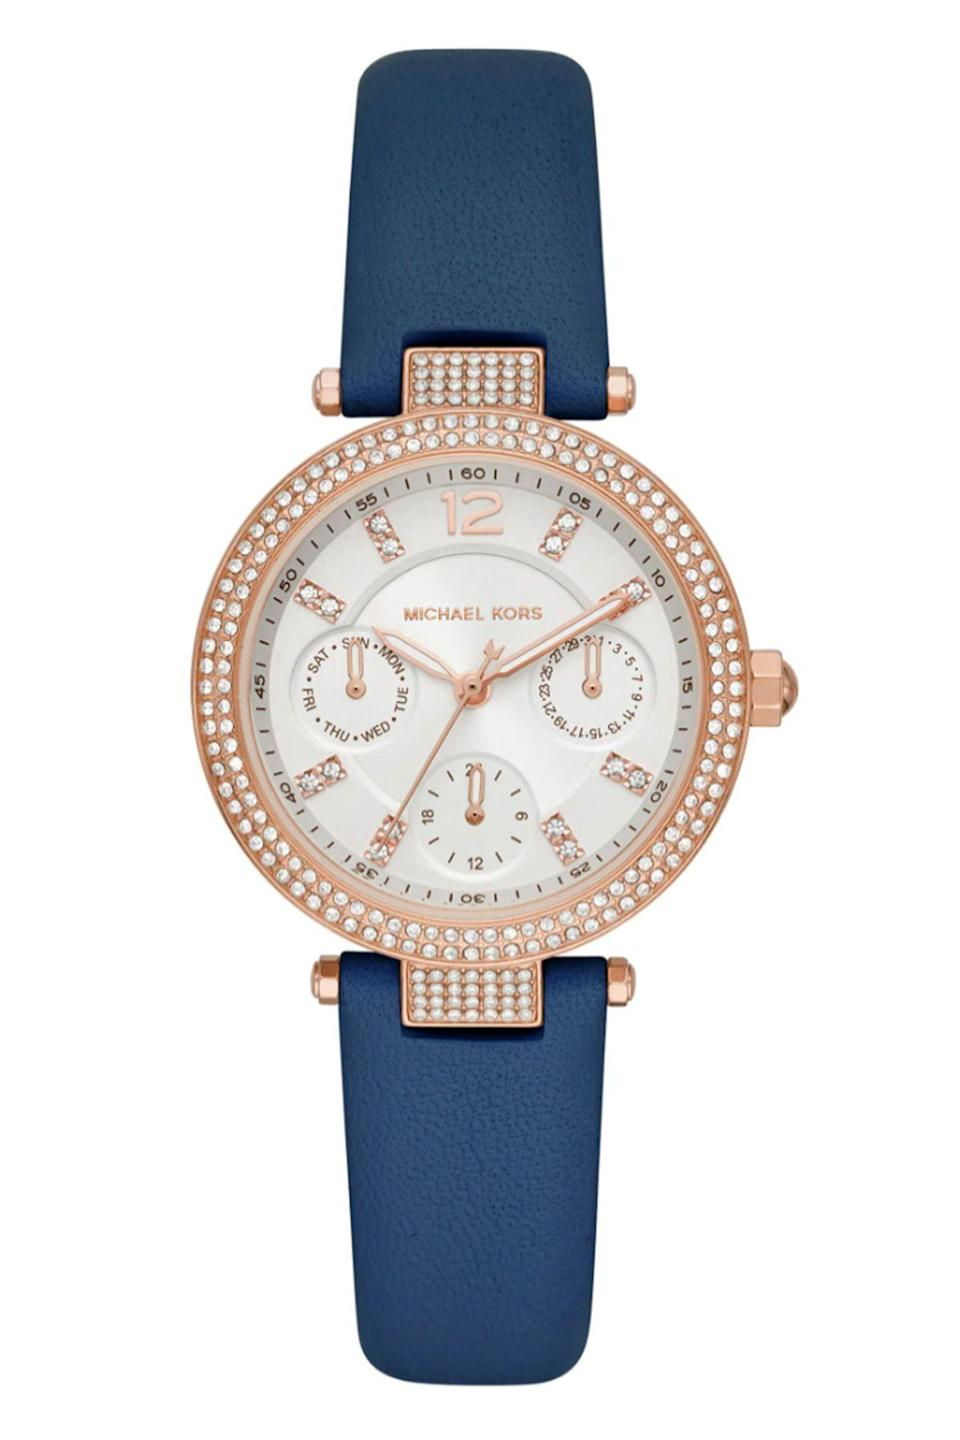 """<p><strong>Michael Kors</strong></p><p>nordstrom.com</p><p><strong>$225.00</strong></p><p><a href=""""https://go.redirectingat.com?id=74968X1596630&url=https%3A%2F%2Fwww.nordstrom.com%2Fs%2Fmichael-kors-parker-pave-leather-strap-watch-33mm%2F5620353&sref=https%3A%2F%2Fwww.townandcountrymag.com%2Fstyle%2Fjewelry-and-watches%2Fg36186288%2Fbest-rose-gold-watches-women%2F"""" rel=""""nofollow noopener"""" target=""""_blank"""" data-ylk=""""slk:Shop Now"""" class=""""link rapid-noclick-resp"""">Shop Now</a></p><p>Add this to your watch collection for the days when you want a colorful strap and a flattering rose gold watch face. </p>"""